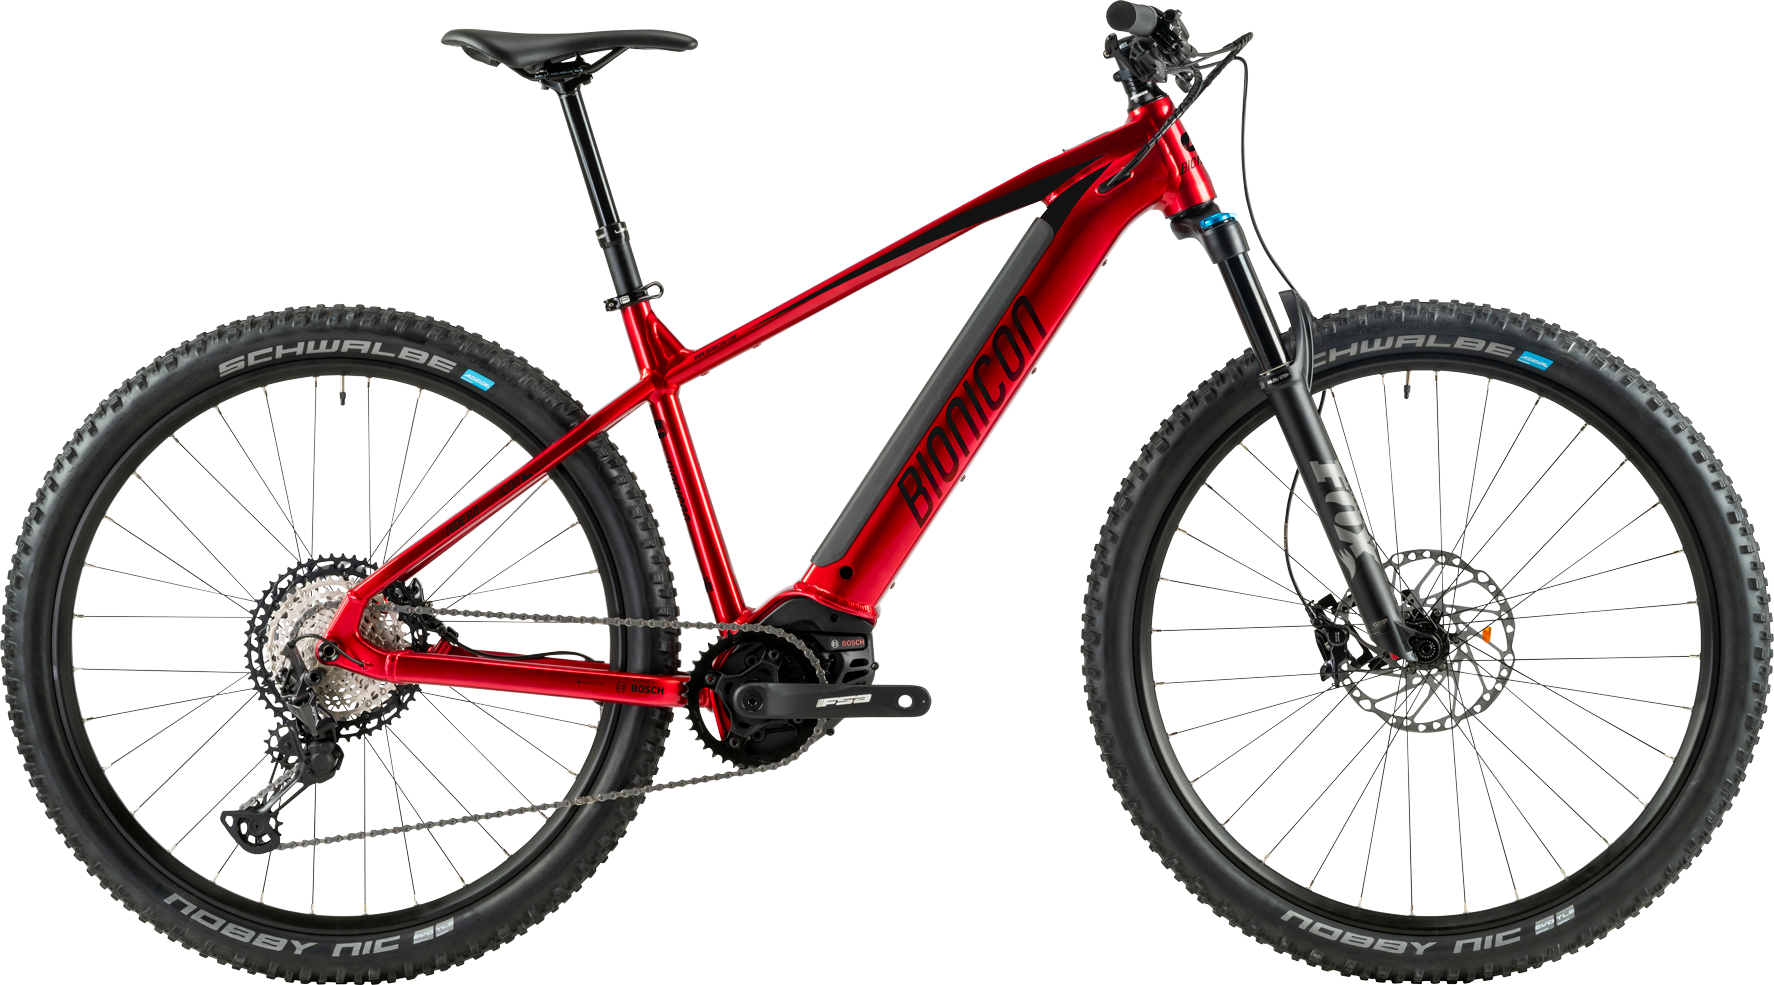 BIONICON_Earp_Bosch_E-MTB_Hardtail_Red